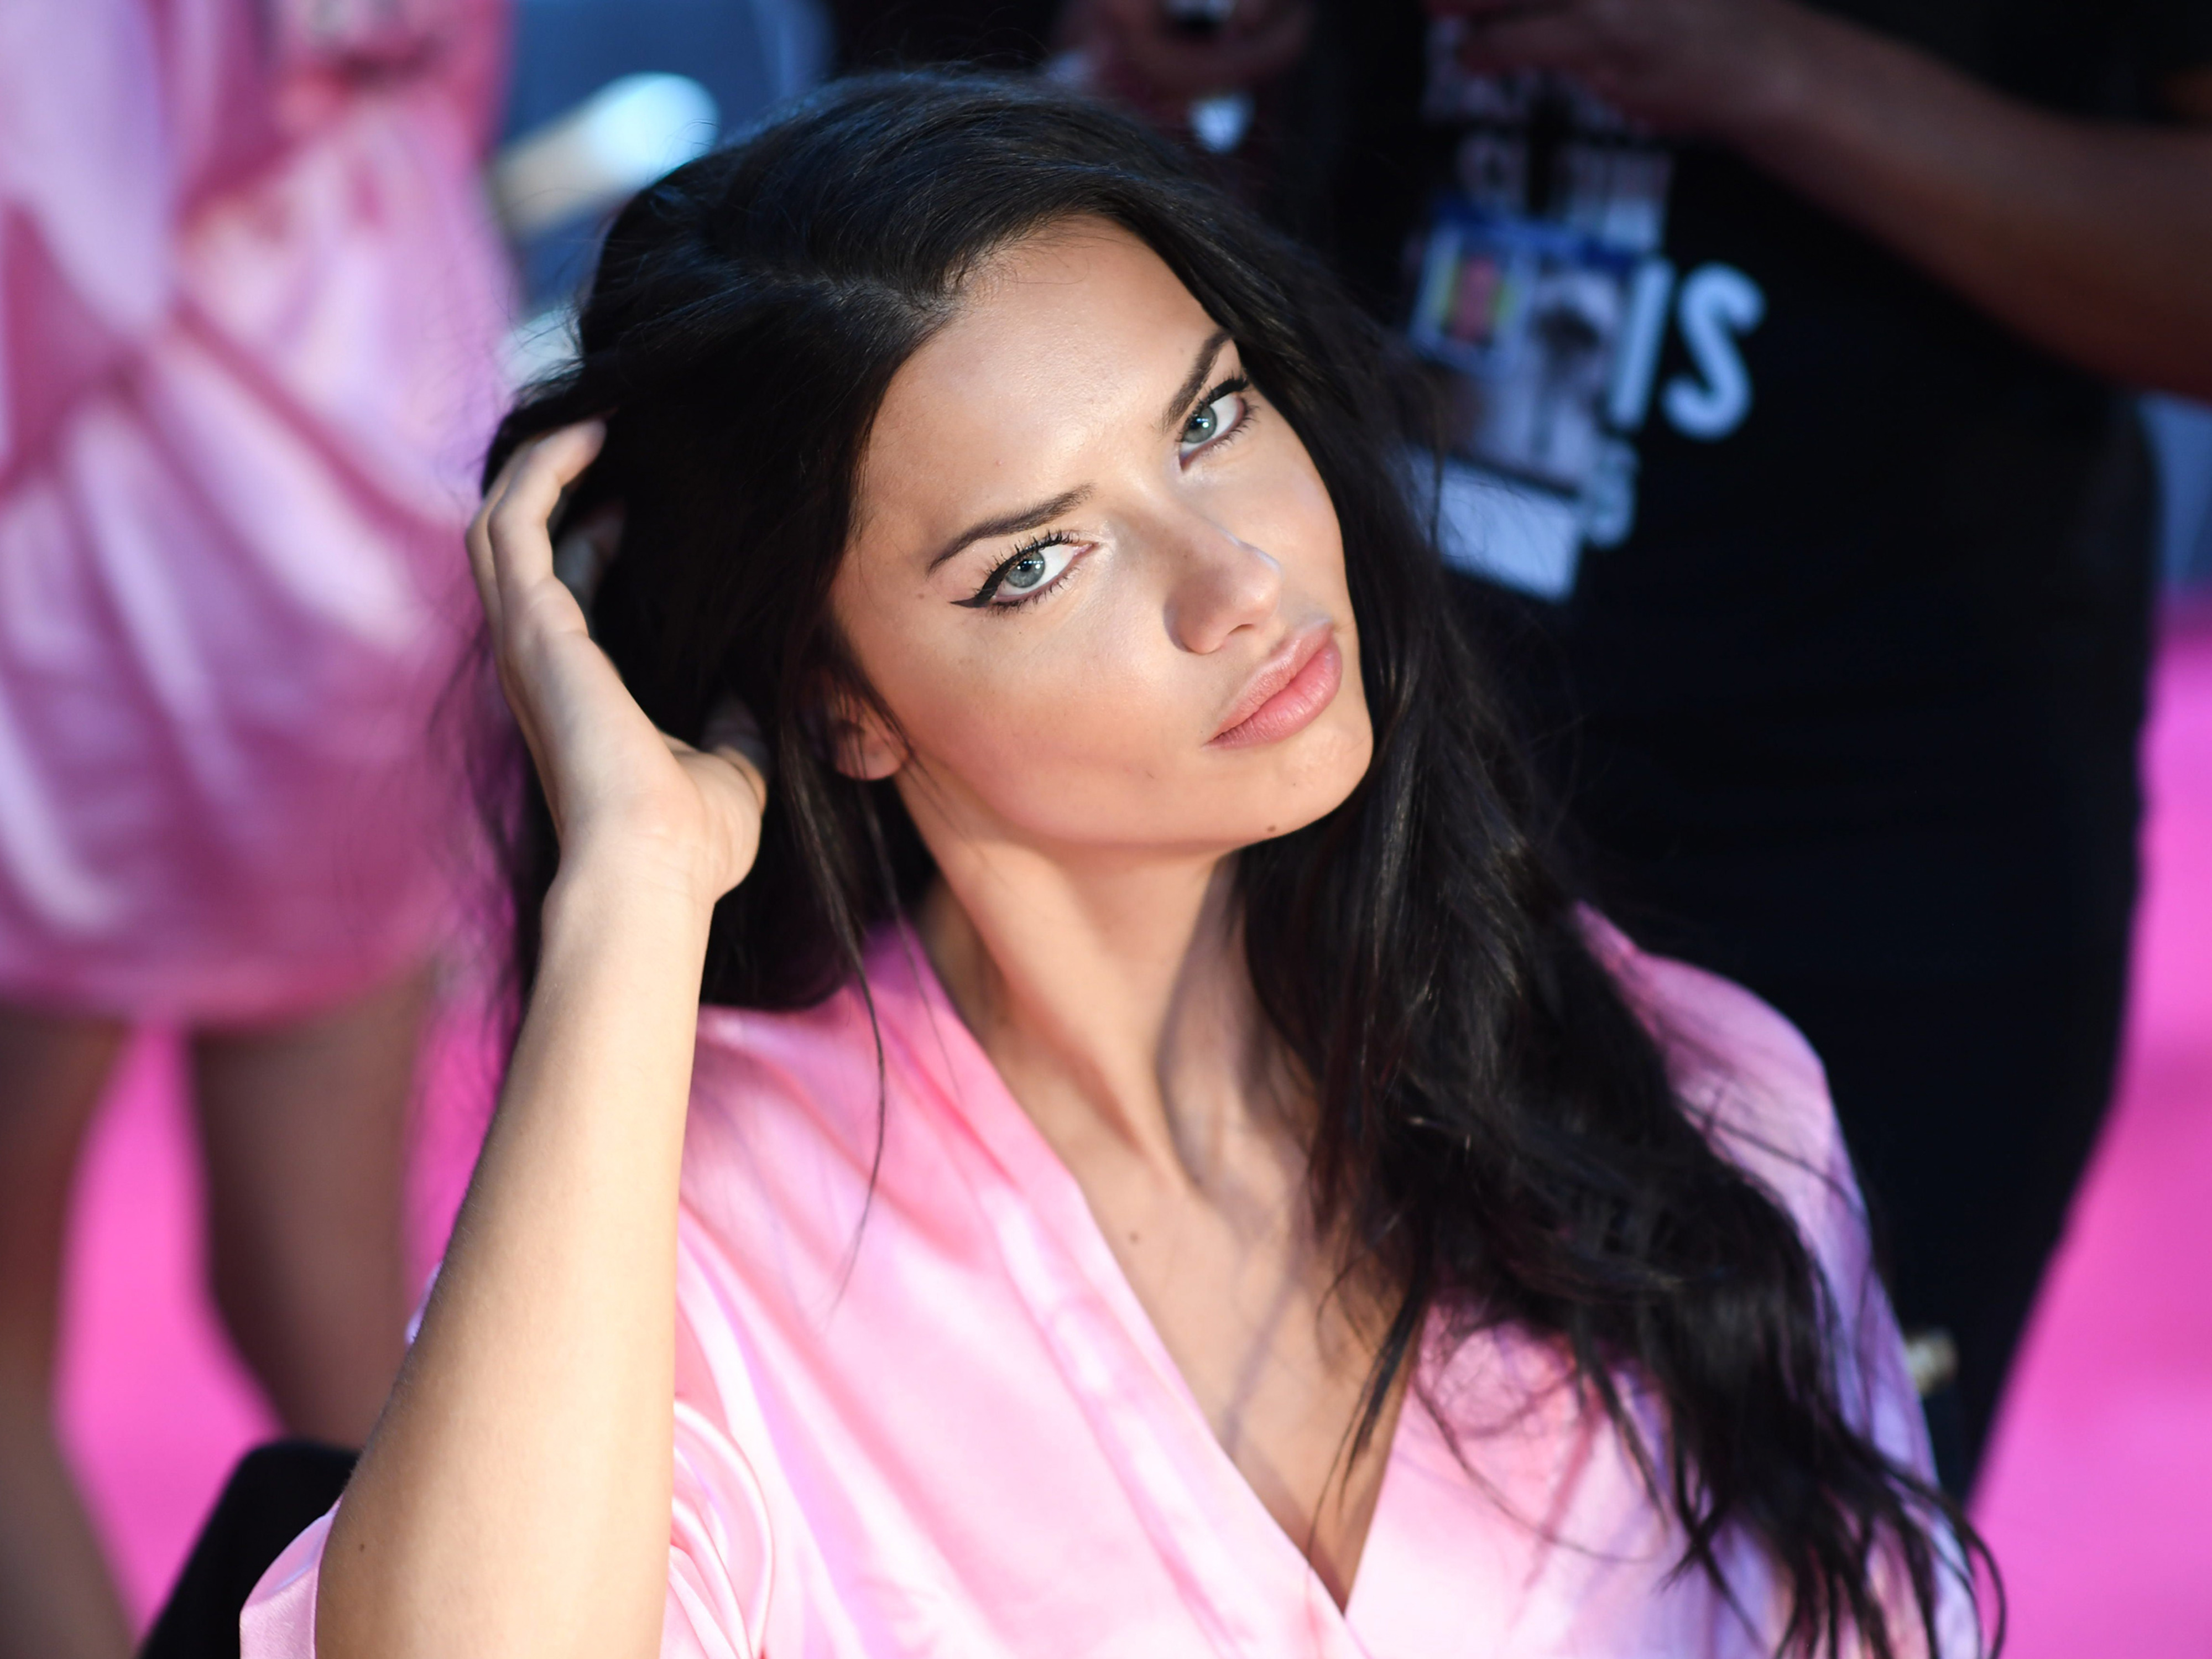 35 Wedding Hairstyles Discover Next Year S Top Trends For: Victoria's Secret 2016: All The Backstage Action